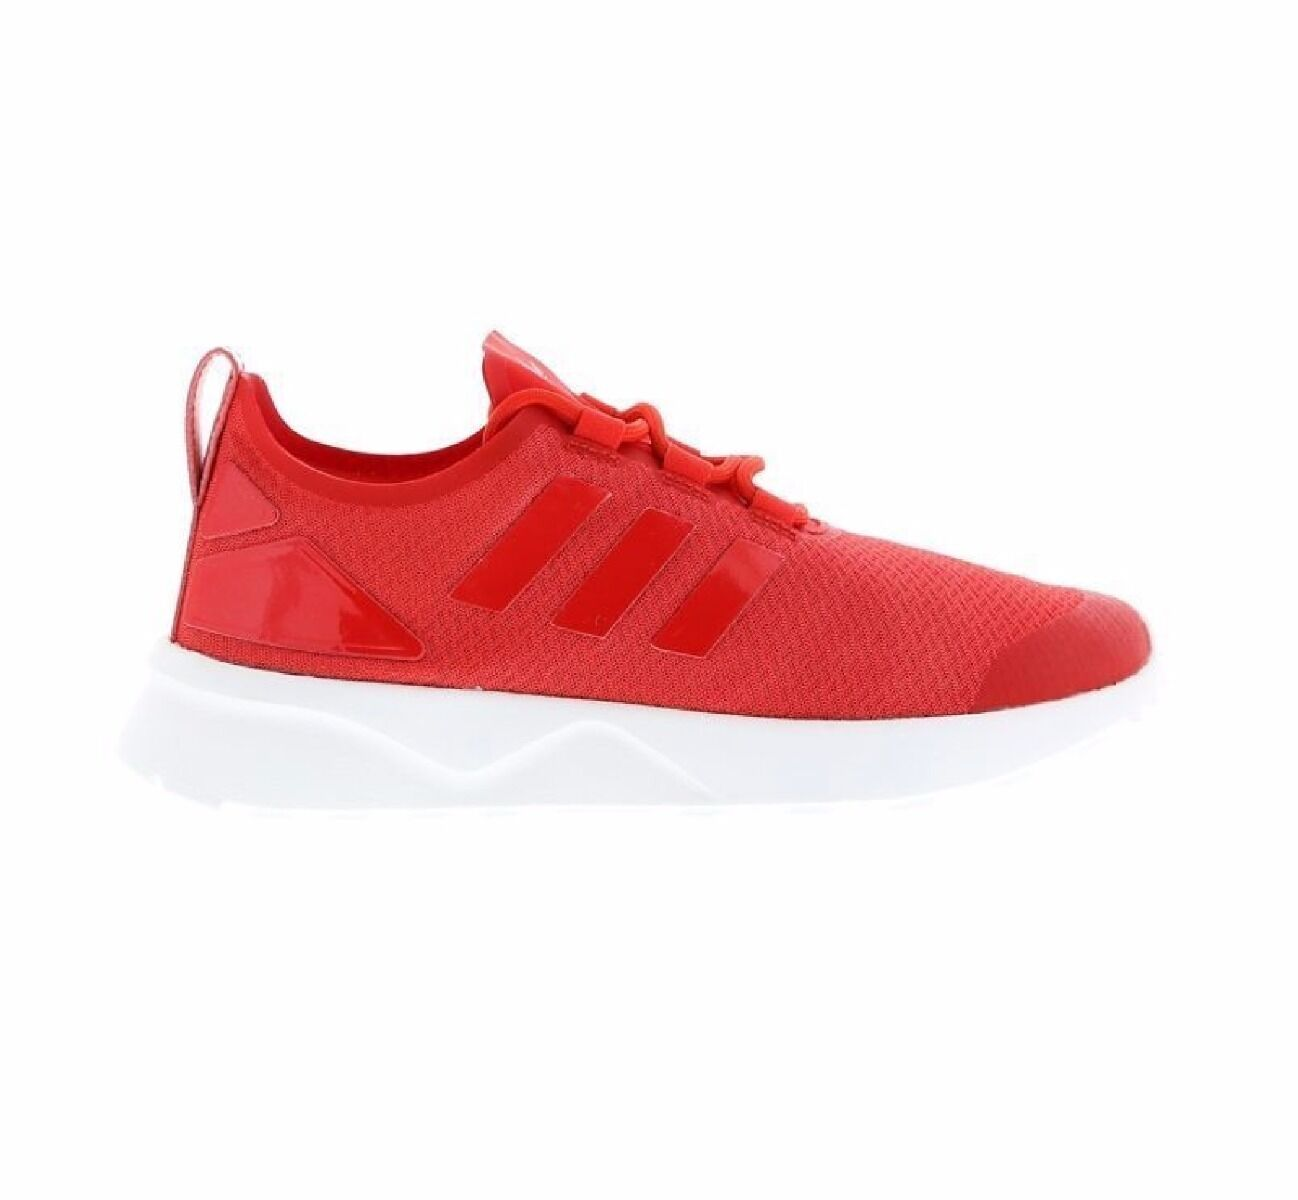 adidas ZX FLUX ADV VERVE Femme RUNNING Chaussures Taille 5 6.5 TRAINER  70 NEW RUN